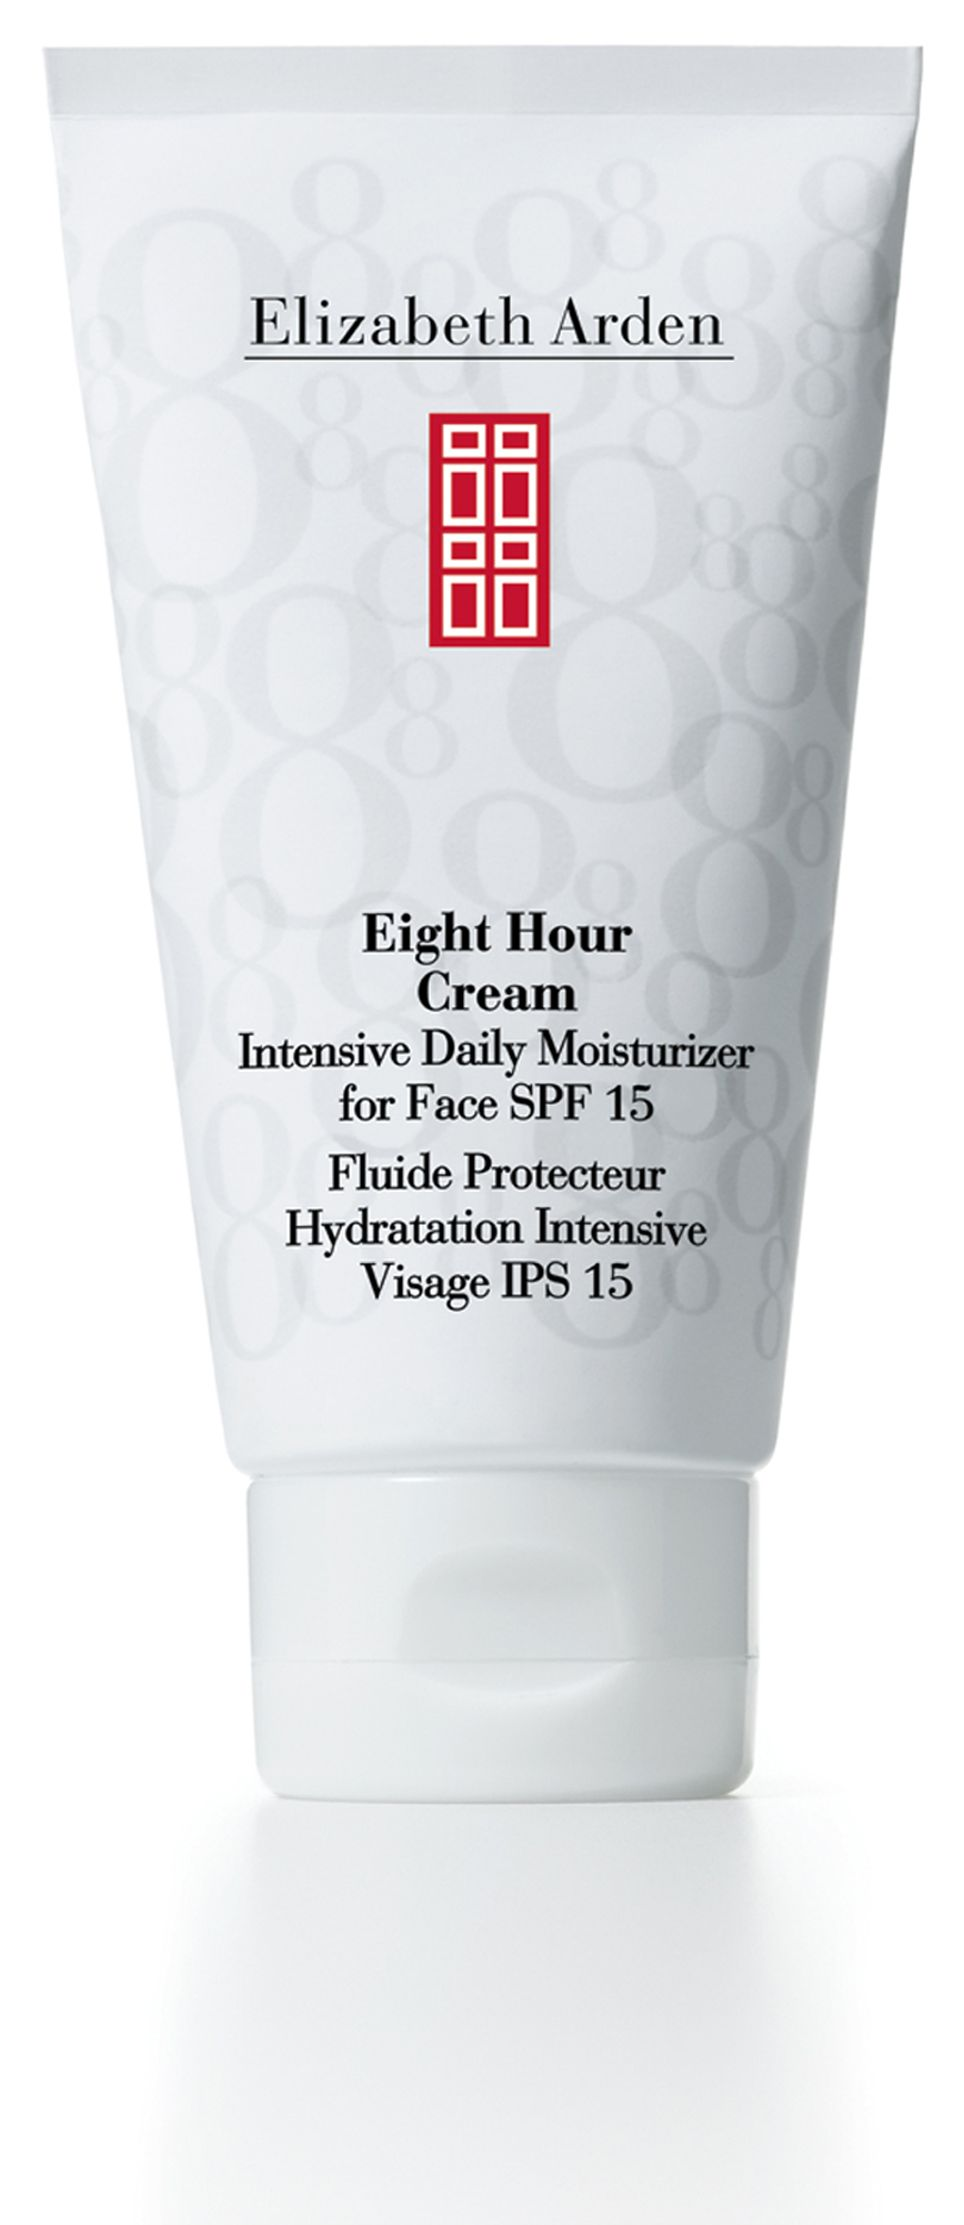 Elizabeth Arden 8 Hour Cream Intensive Daily Moisturizer for Face